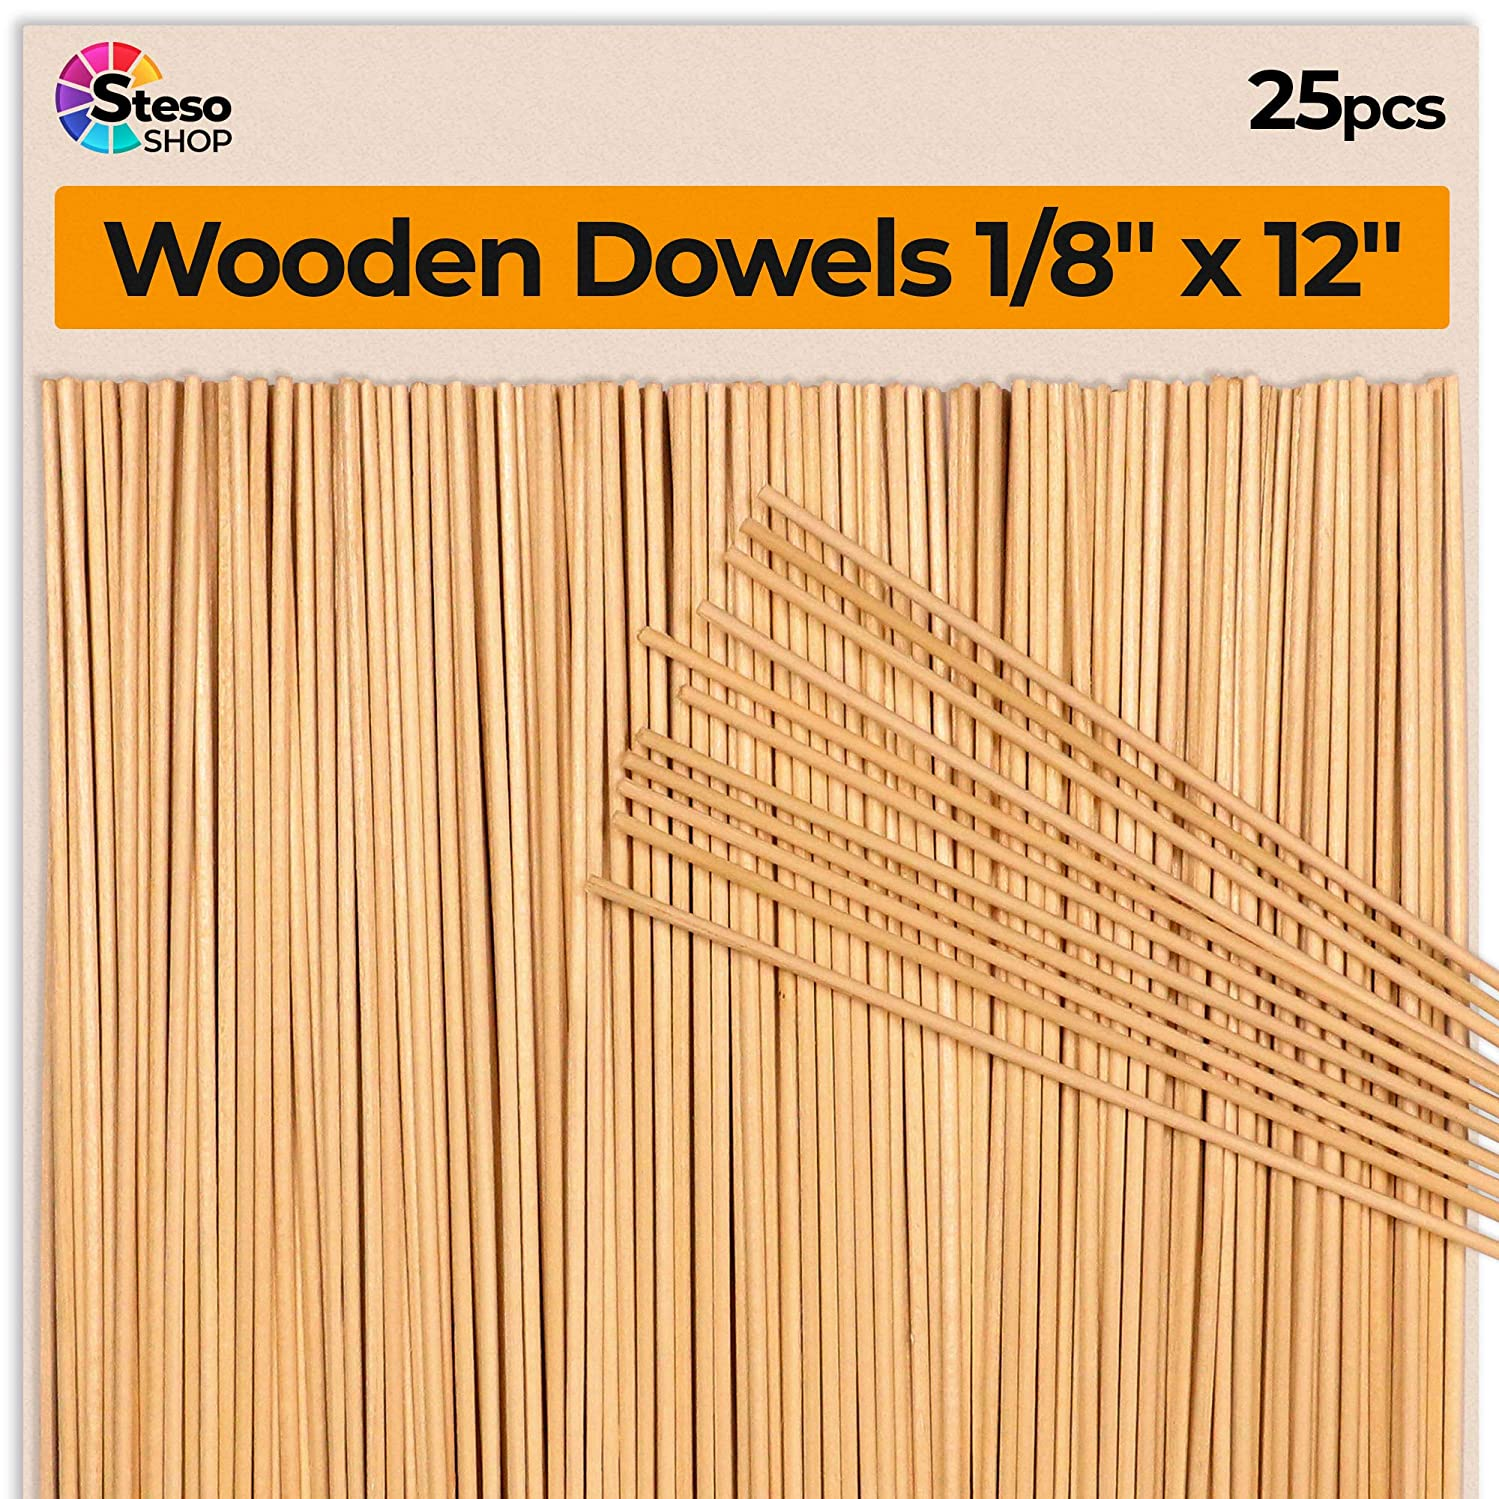 Wooden Dowel Rods 12 inch 1/8 ? - Thin Wooden Dowels Craft - 25 pcs - Dowel Rods for Crafts - Unfinished Natural Wood Craft Sticks Hardwood Dowel Supplies